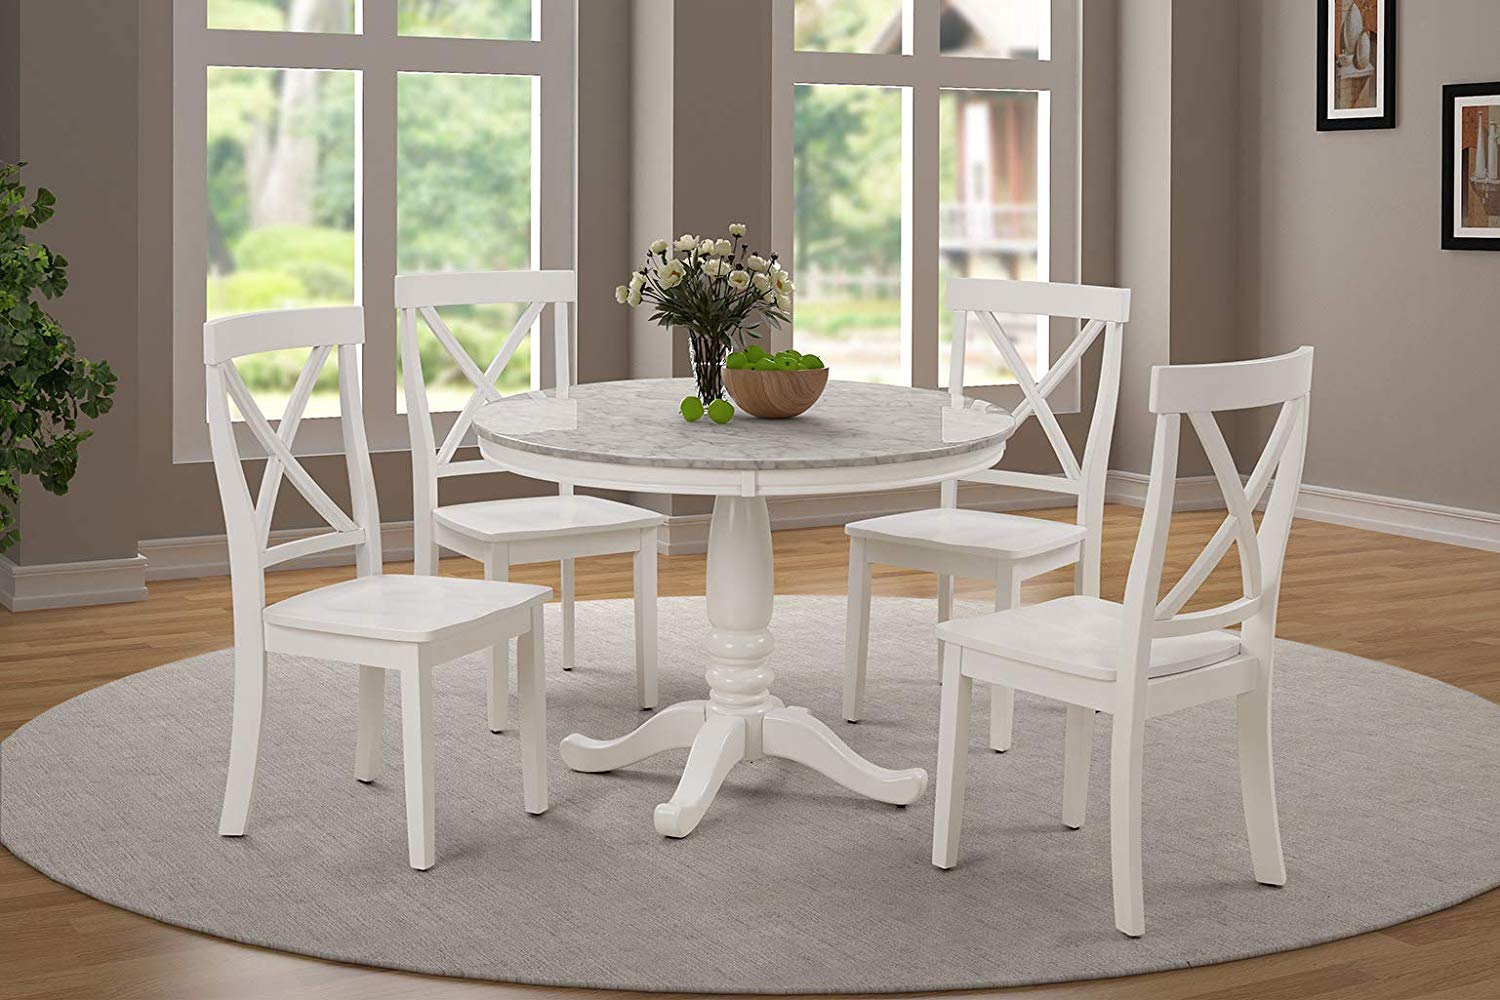 Harper&Bright Designs 5 Piece Round Dining Set with 4 Chairs Wood Dining Table Set (White)